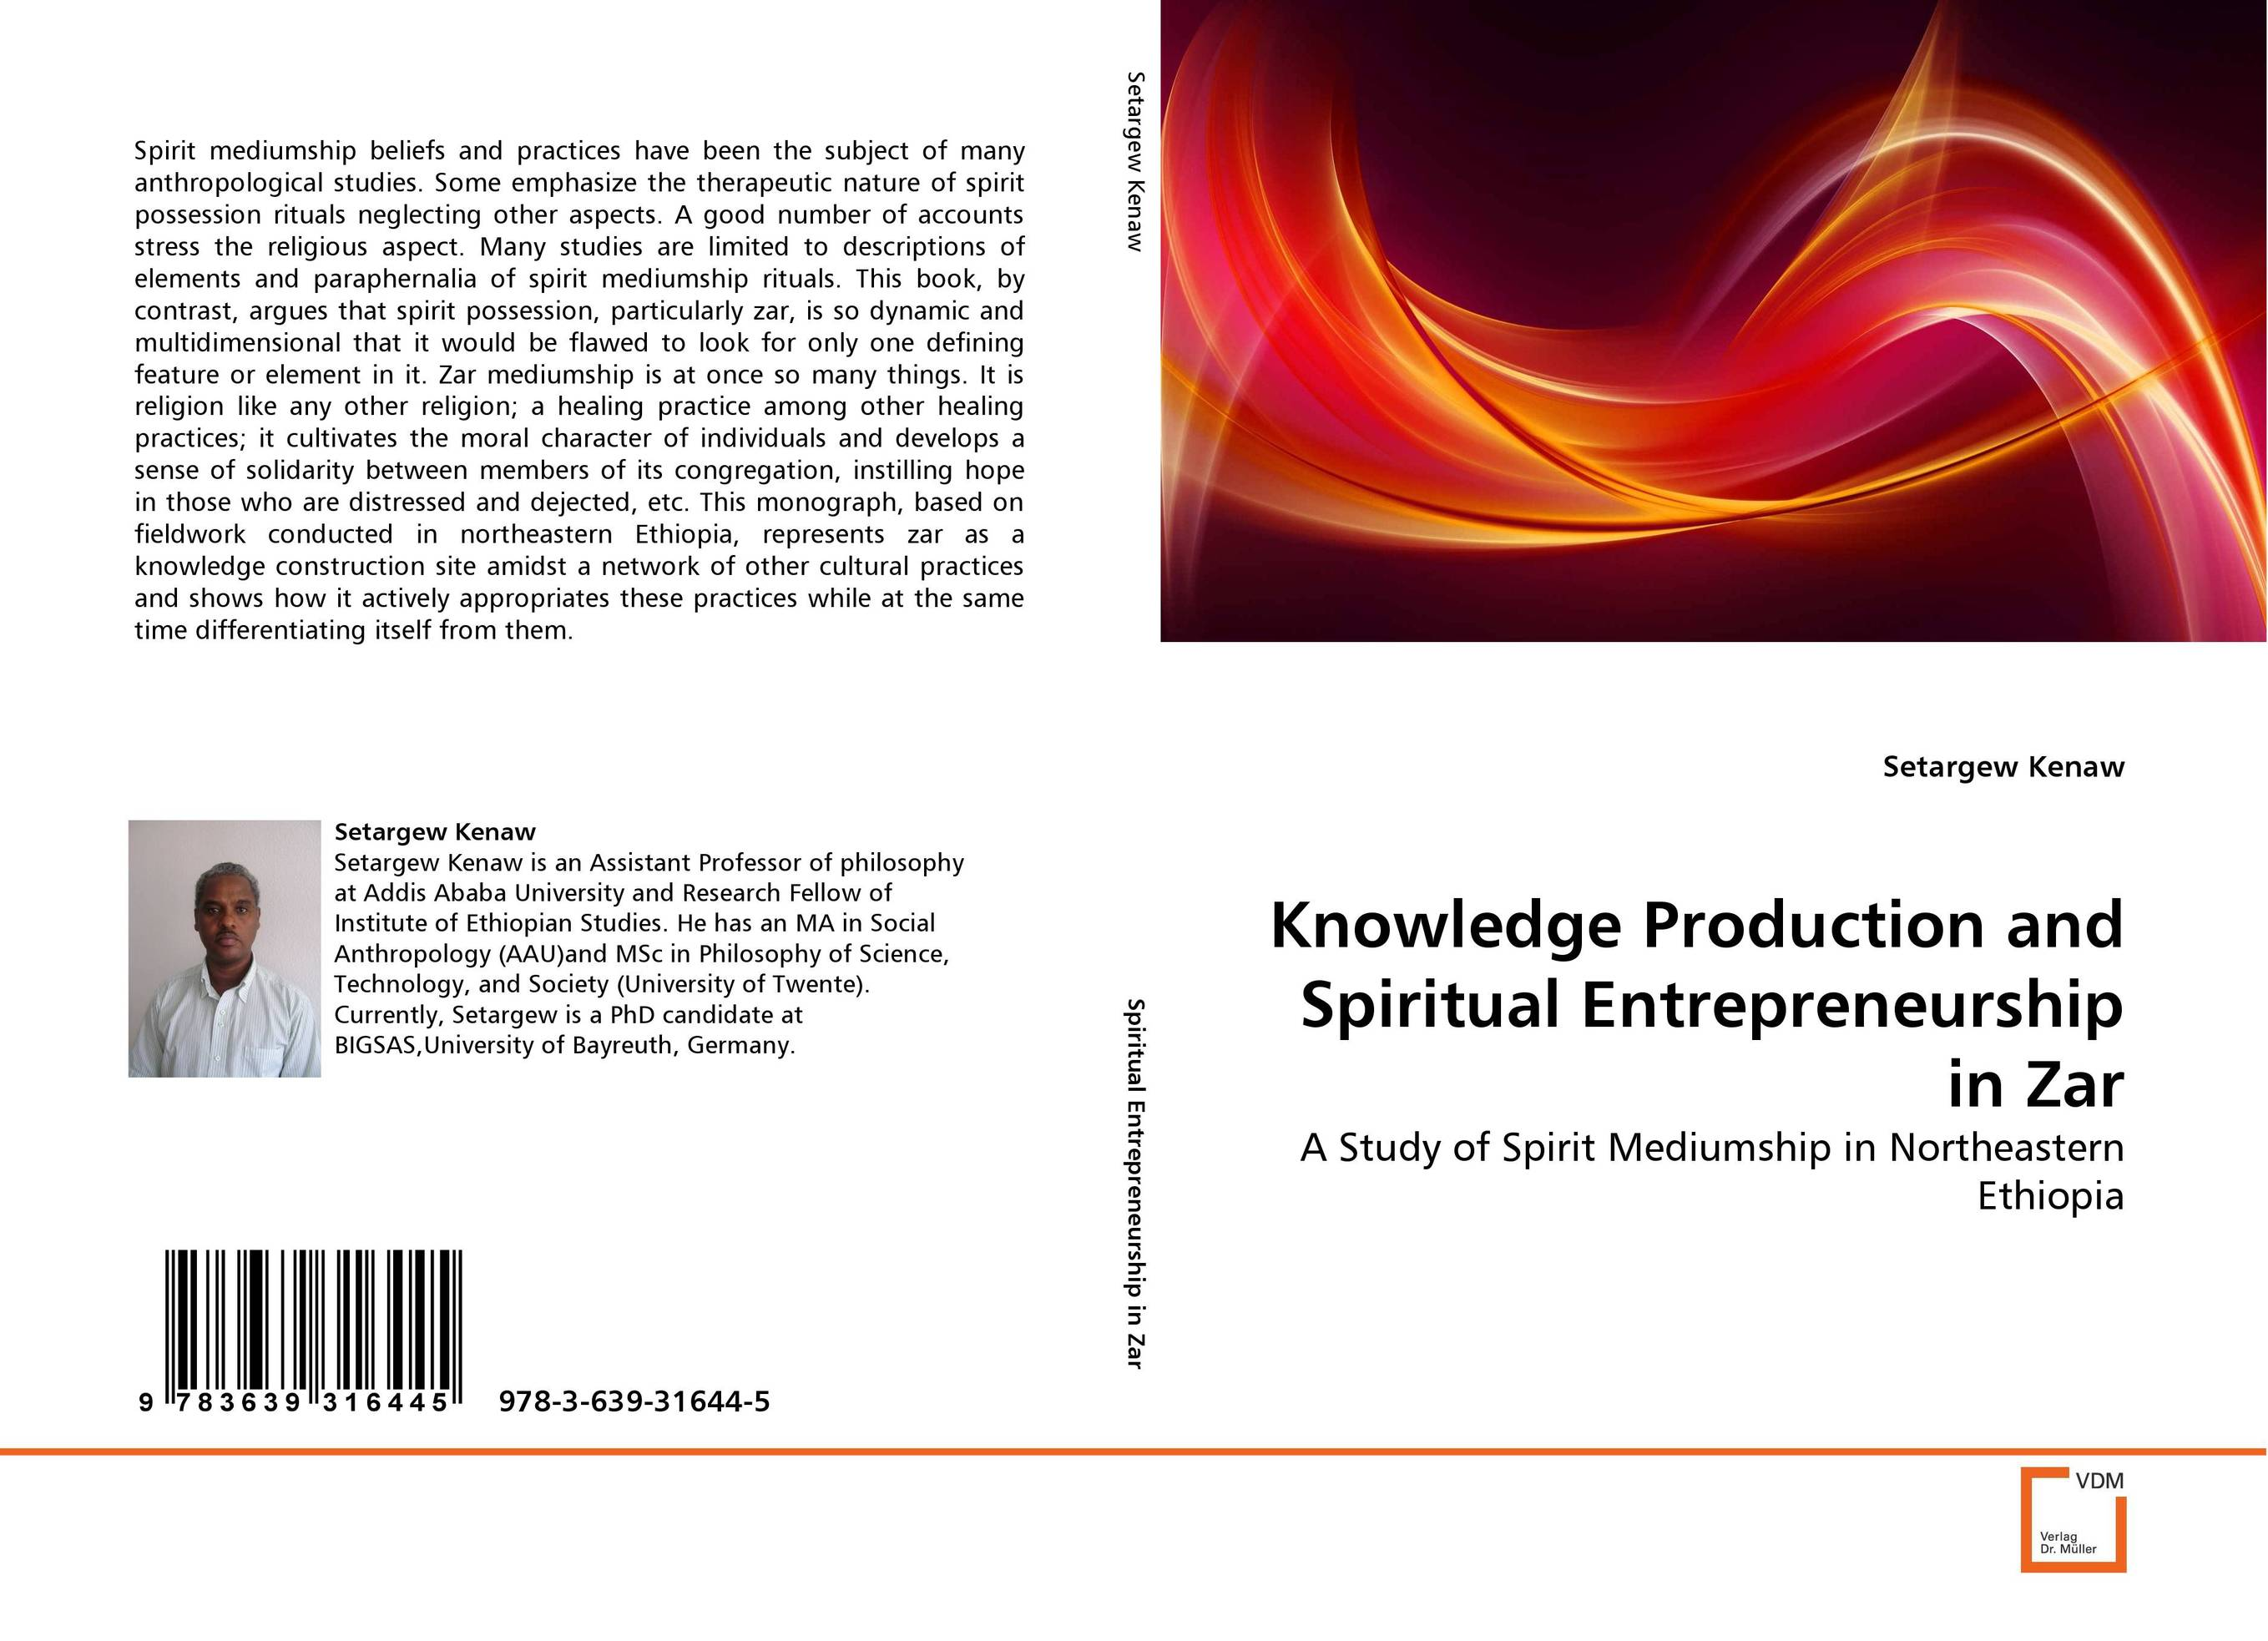 Knowledge Production and Spiritual Entrepreneurship in Zar